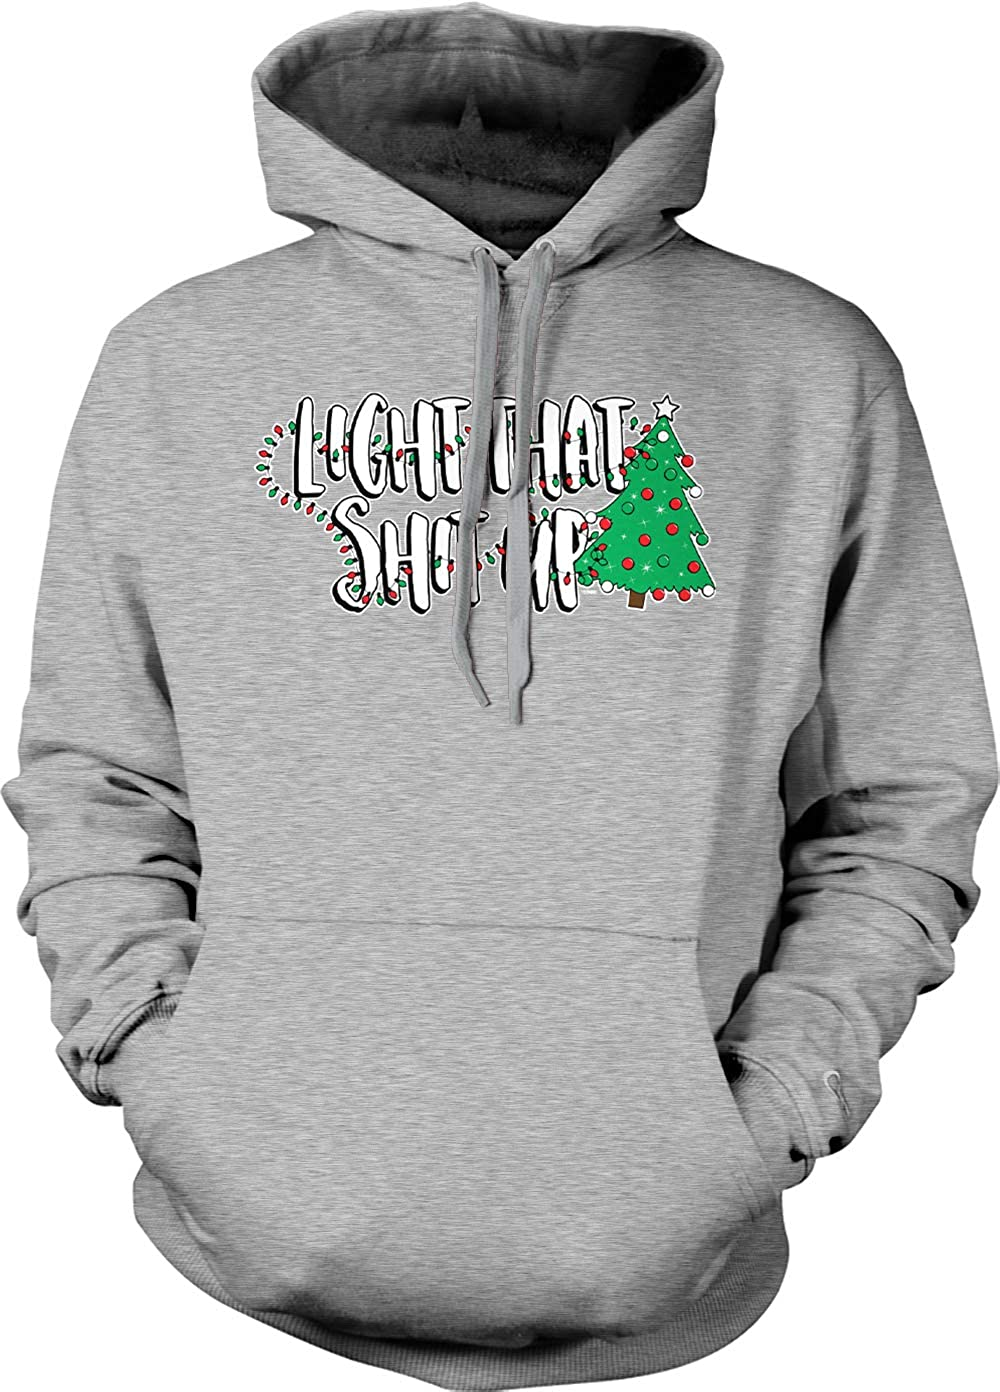 Christmas Xmas Tree Unisex Hoodie Sweatshirt Tcombo Light That Sht Up